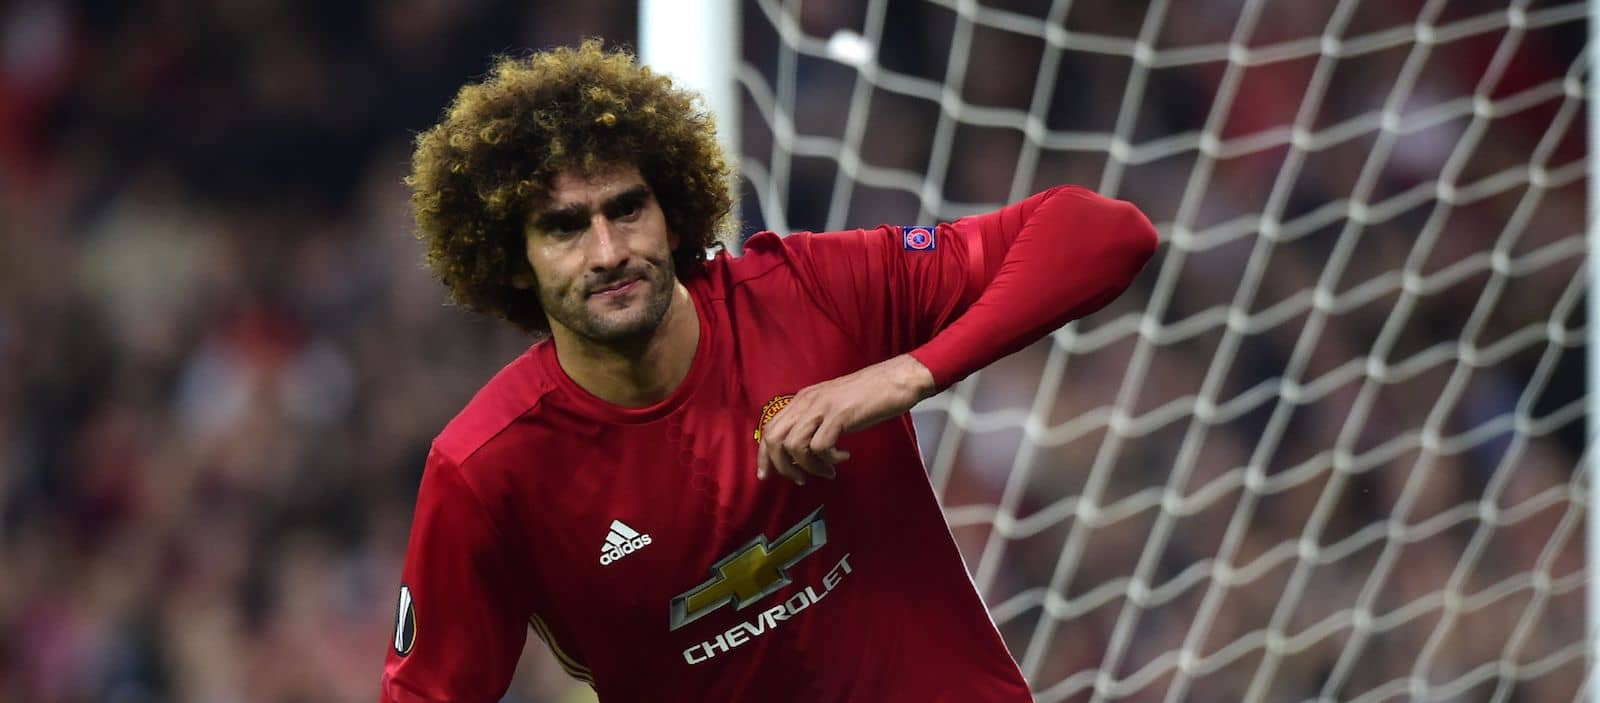 Fellaini reacts to new found popularity at Manchester United